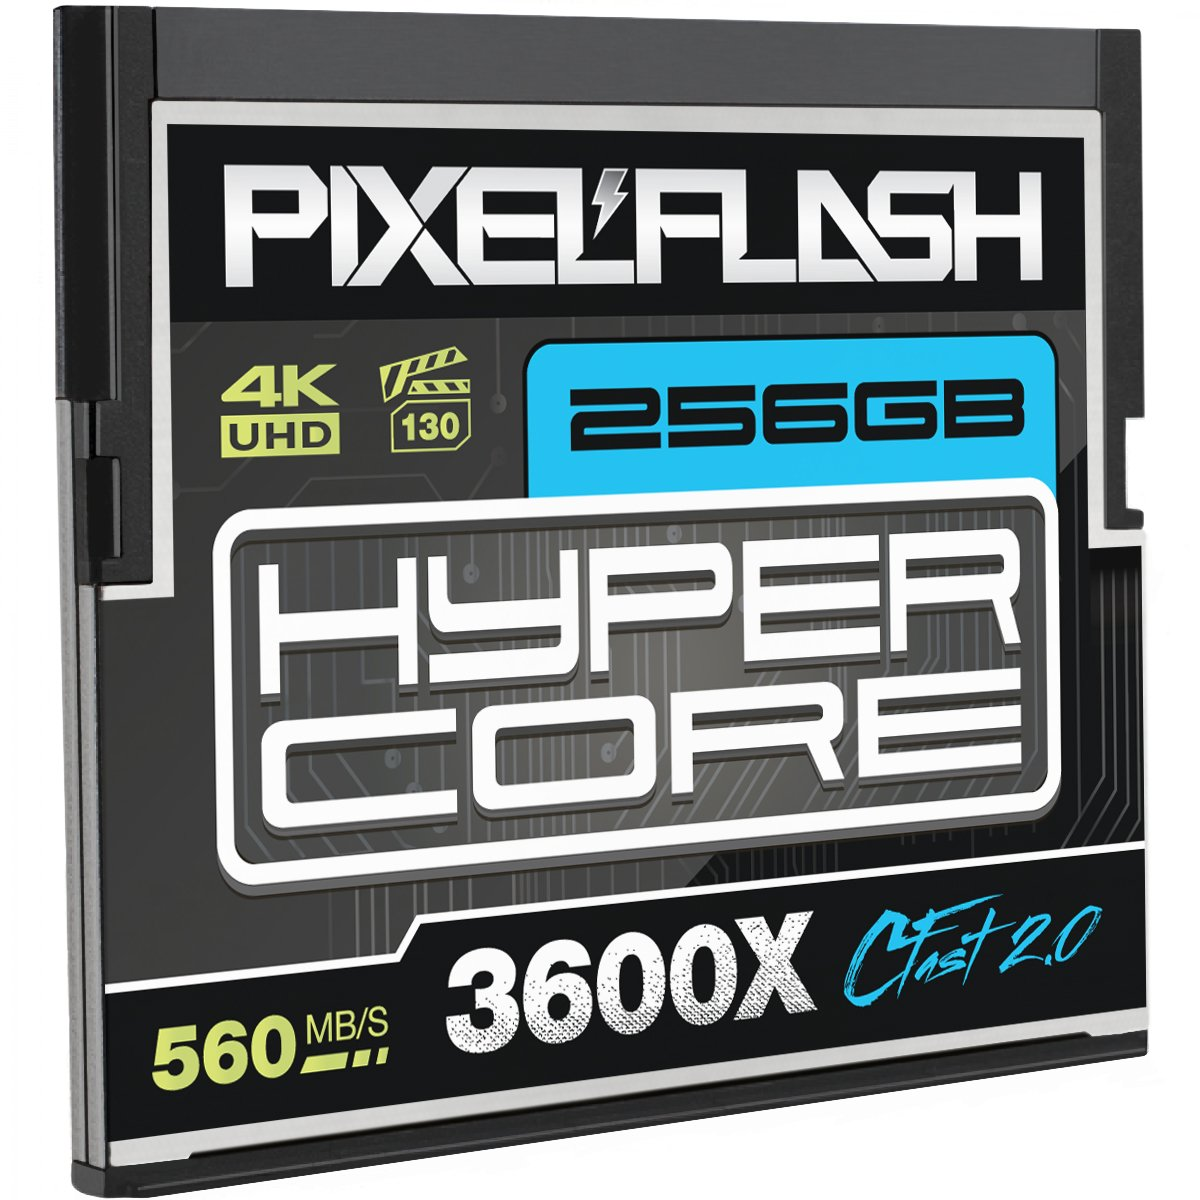 256GB PixelFlash HyperCore CFast 2.0 Memory Card 3600X up to 560MB/s SATA3 C Fast for Phase One Leica Alexa Mini Canon Nikon Hasselblad Blackmagic Ursa and More by PixelFlash